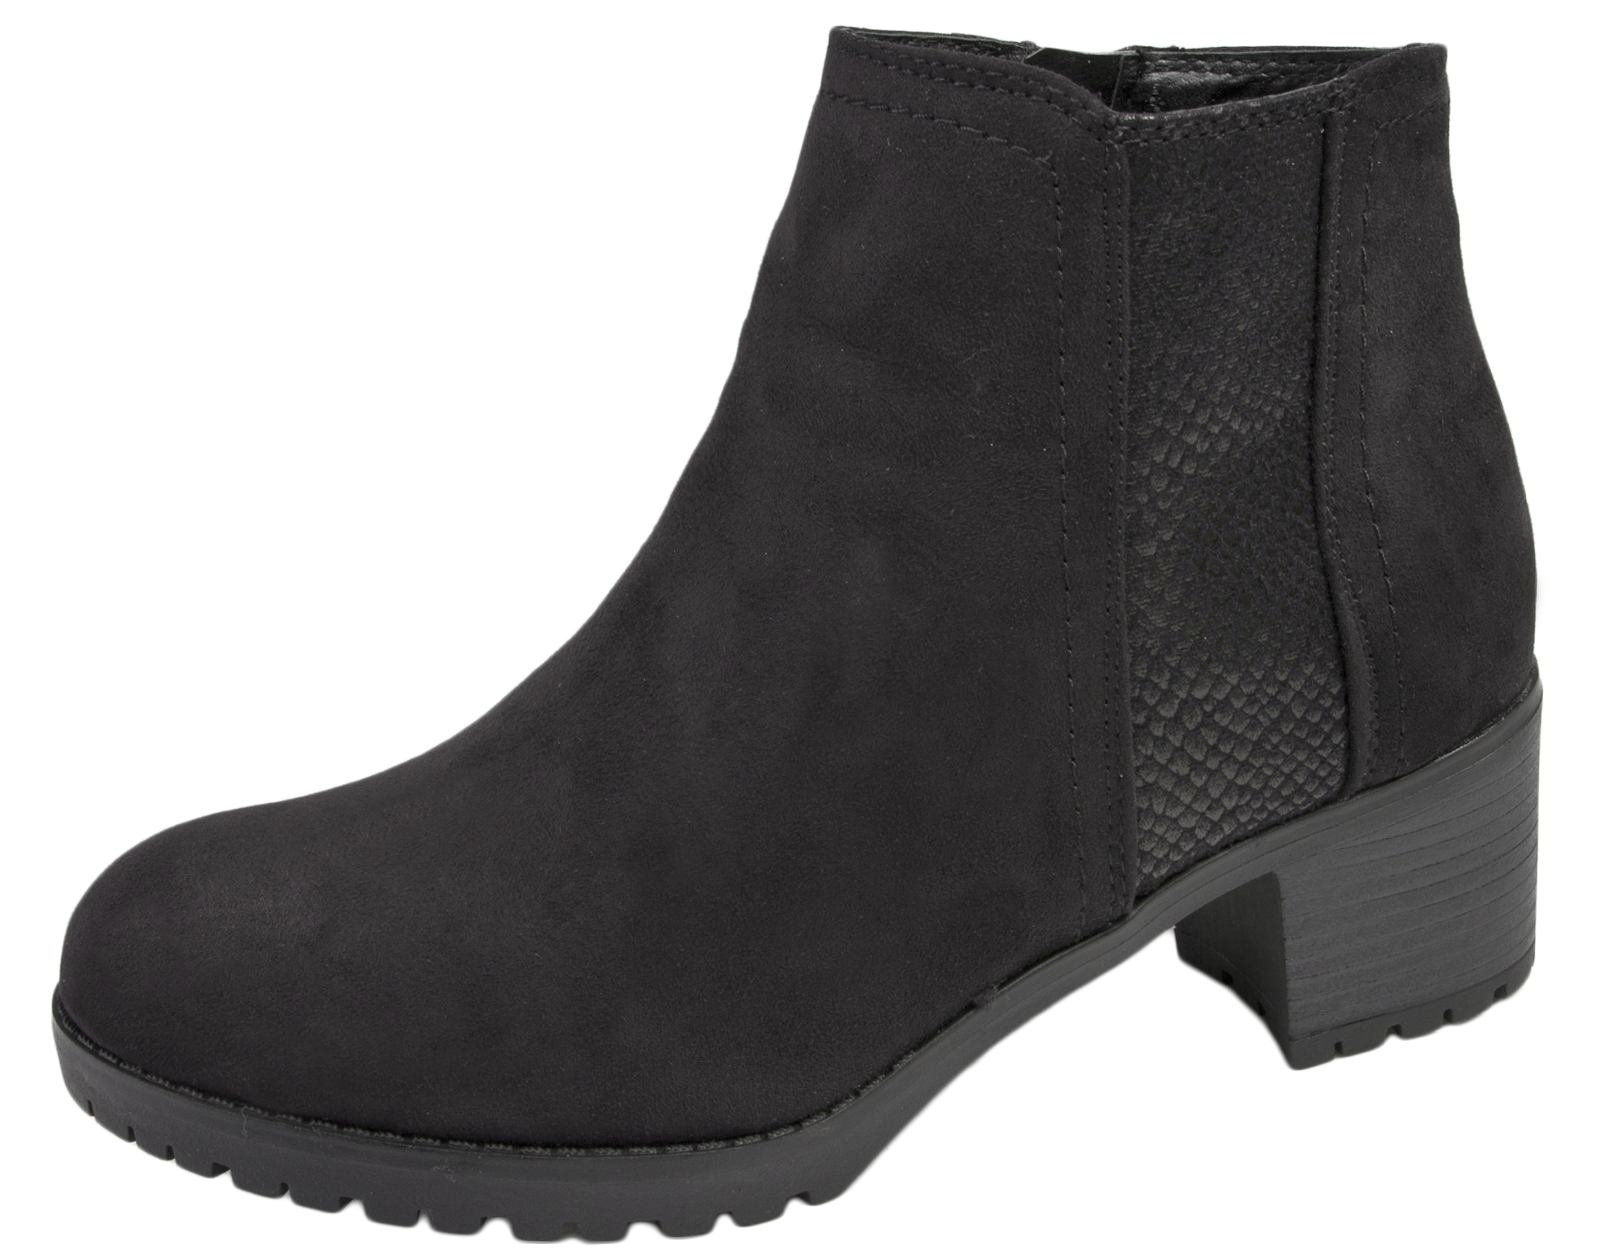 677feca867e7 Womens Chunky Block Heel Cleated Sole Platforms Chelsea Ankle Boots ...